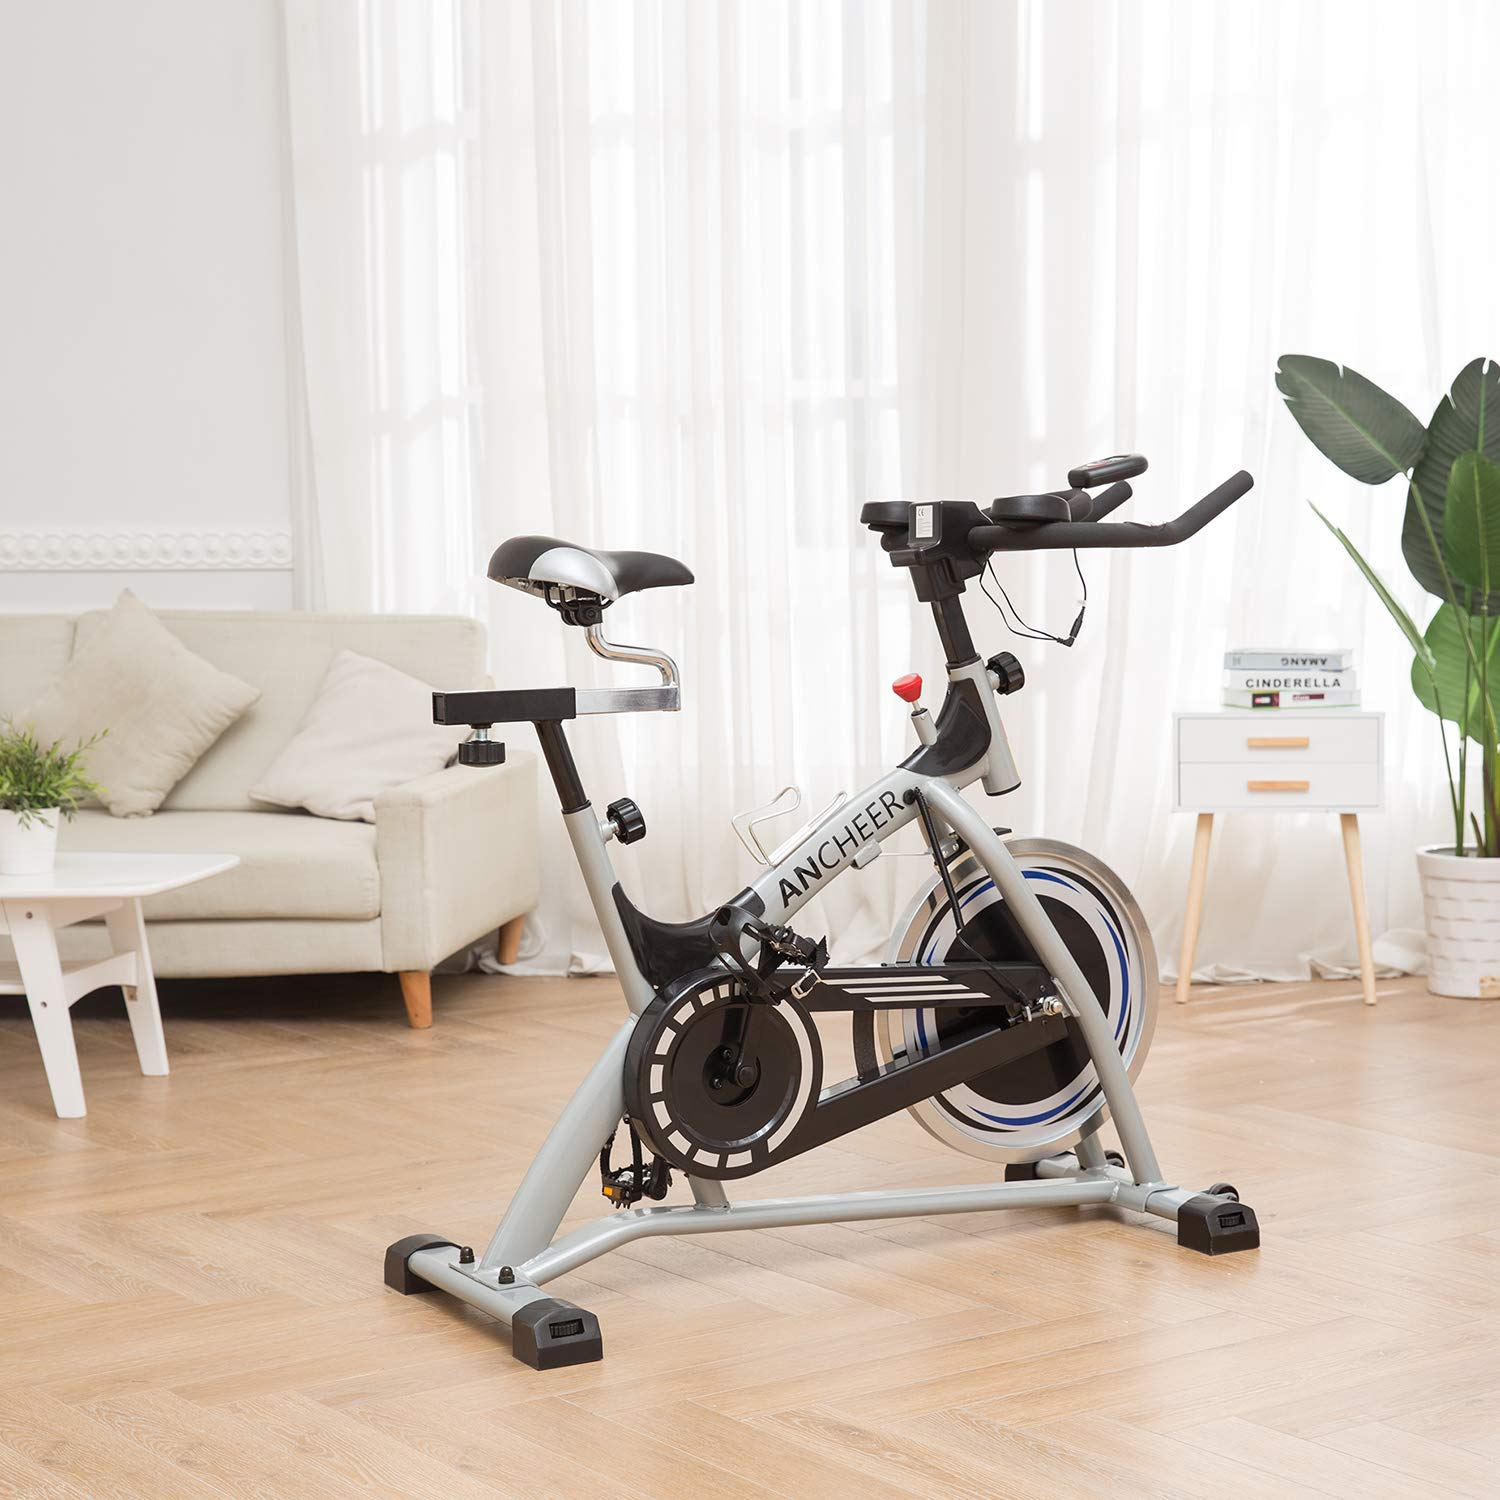 ANCHEER Stationary Bike, 40 LBS Flywheel Belt Drive Indoor Cycling Exercise Bike with Pulse, Elbow Tray (Model: ANCHEER-A5001) (Sliver) by ANCHEER (Image #2)